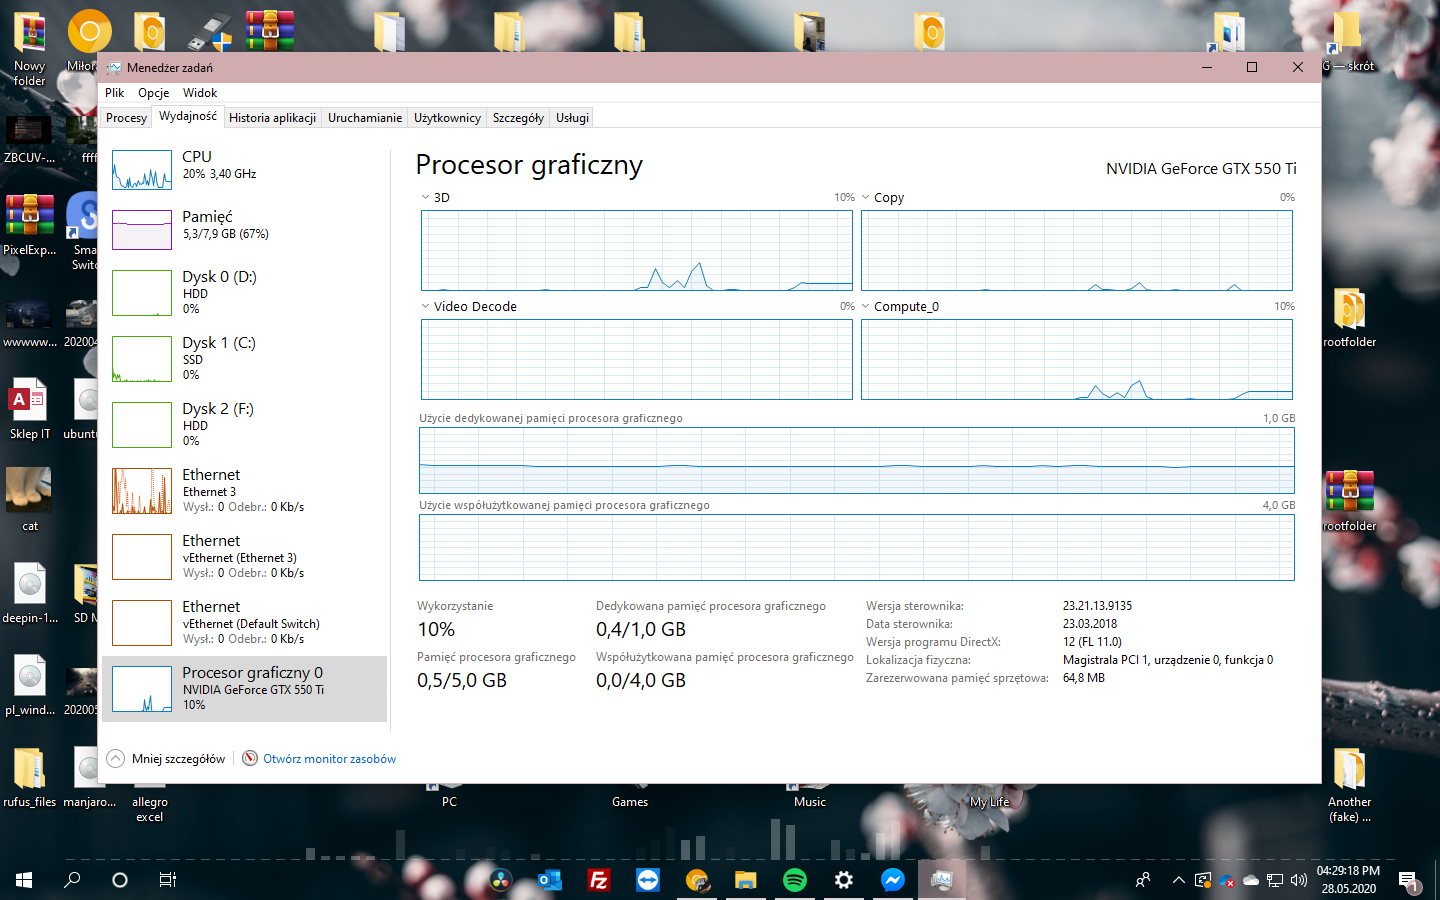 Windows 10 2004 Update #9 - Task Manager